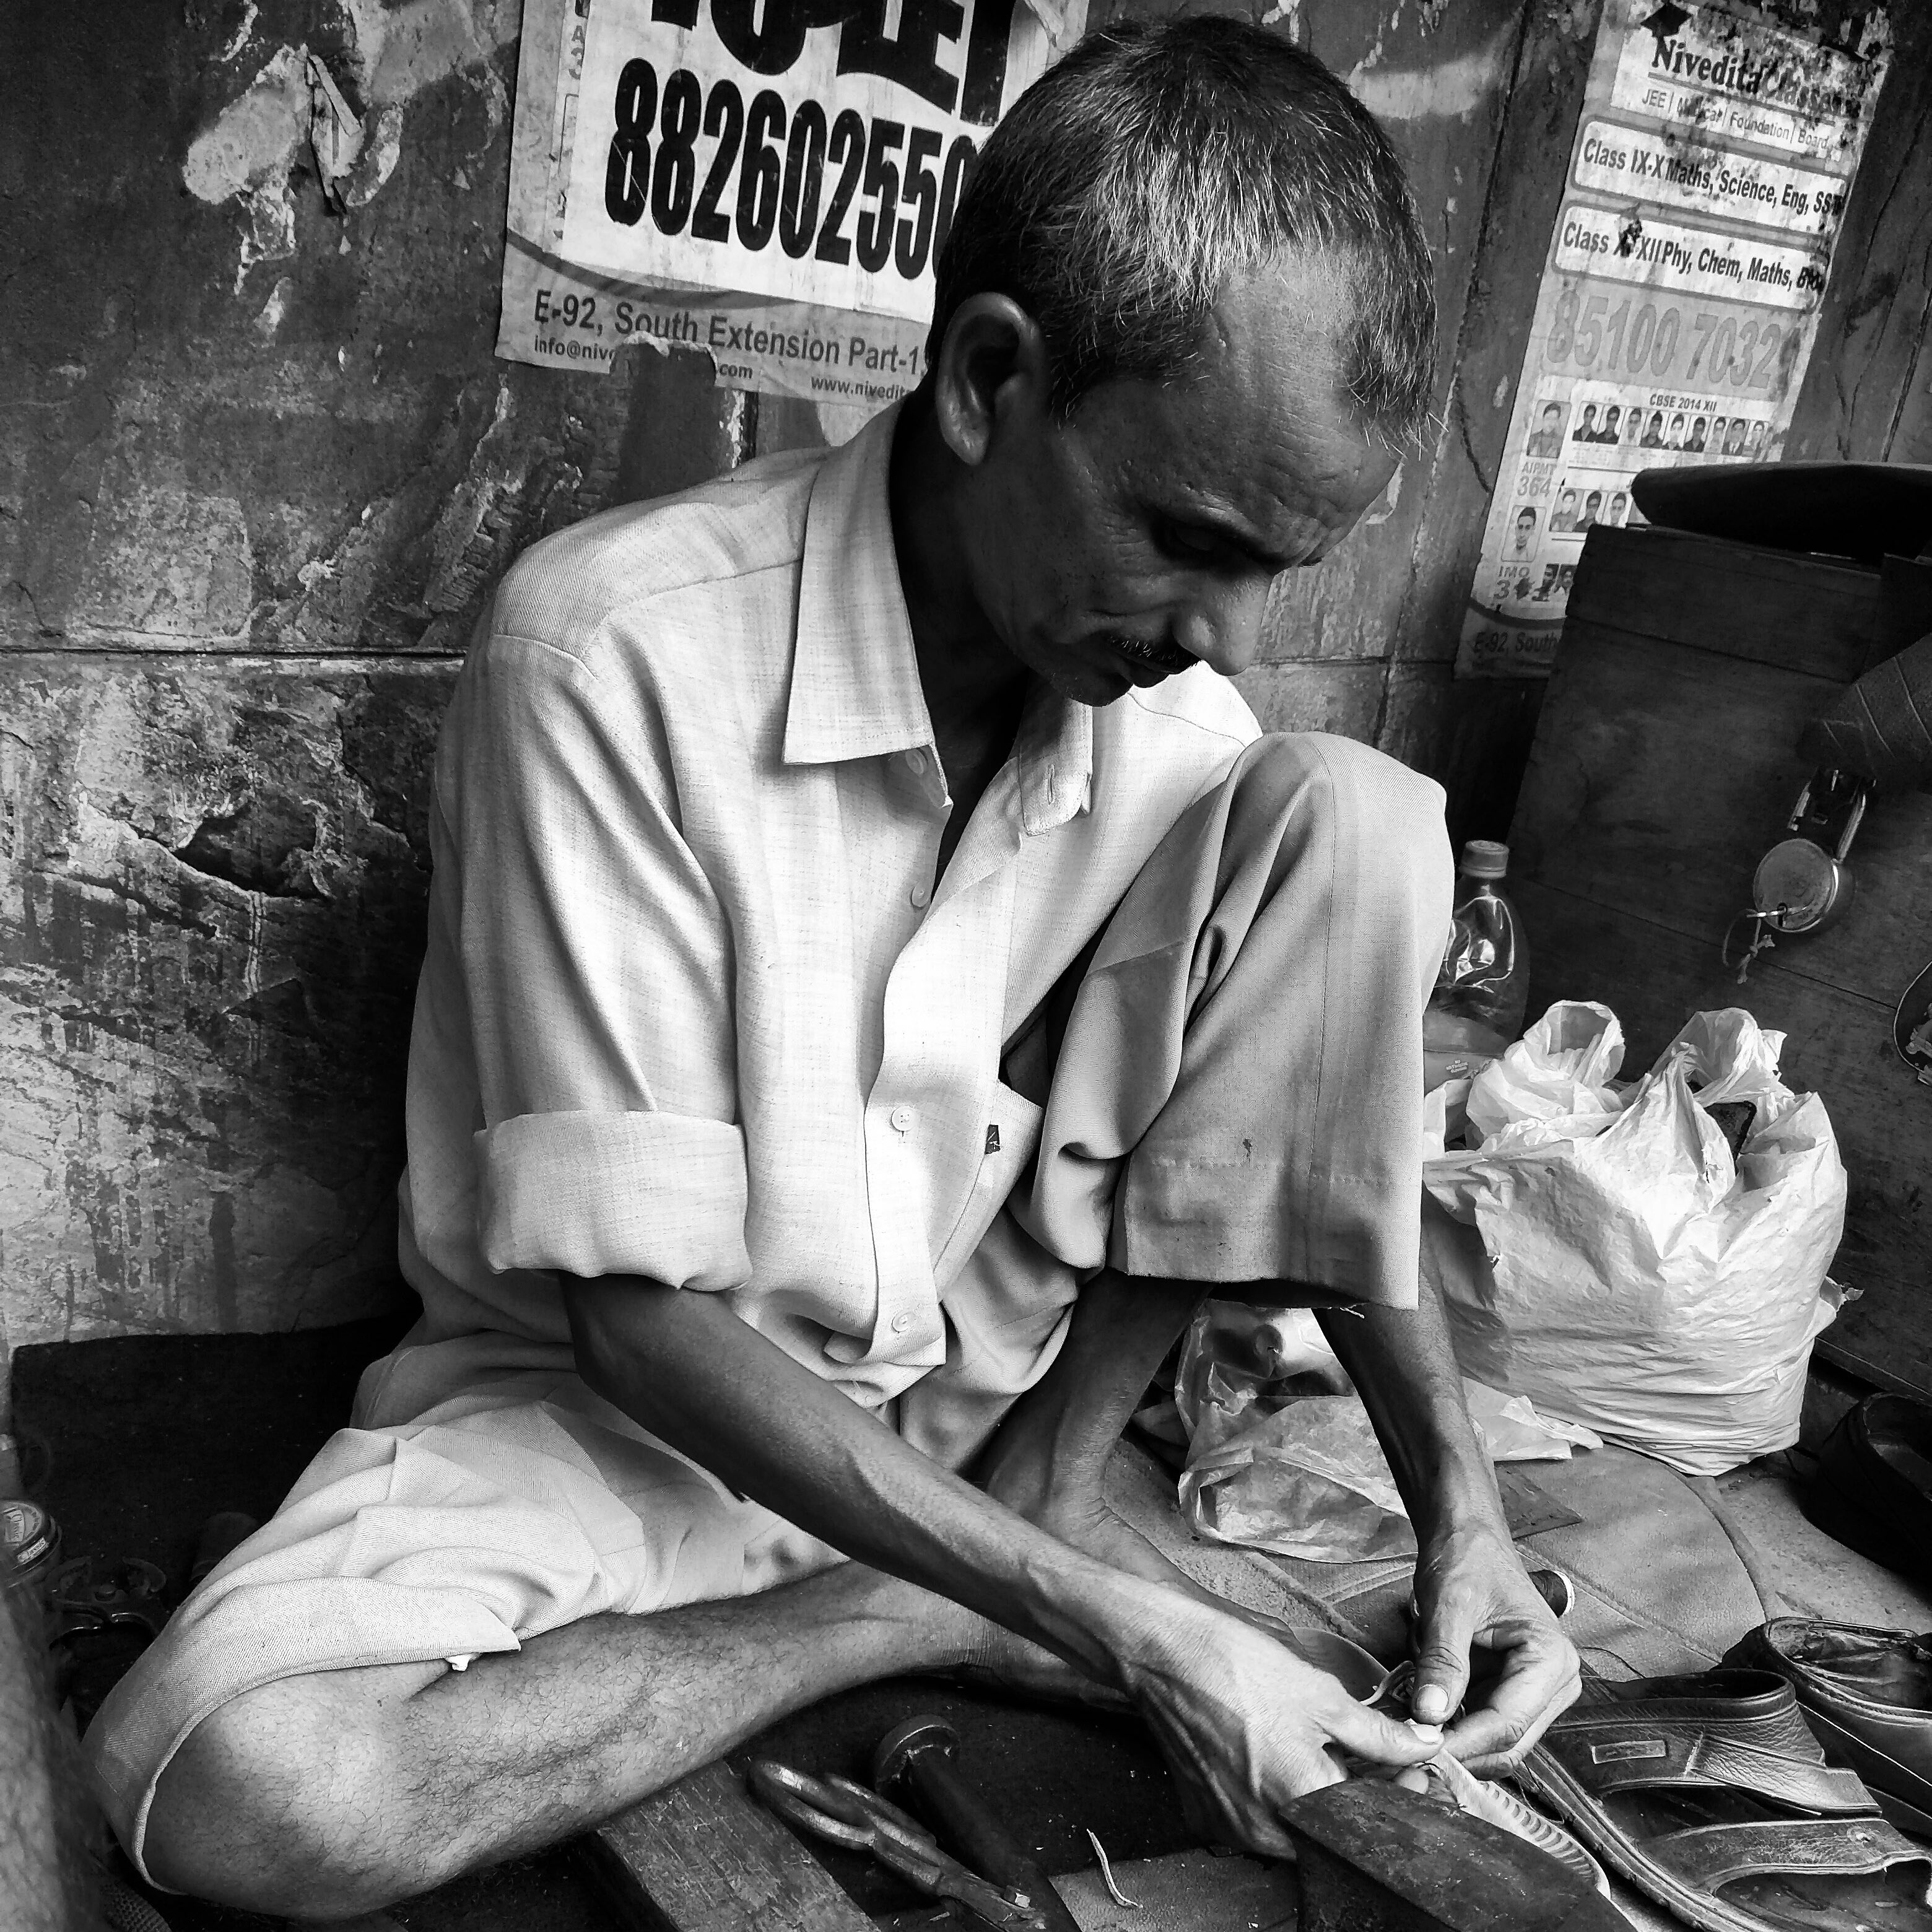 A Bihari migrant working as a cobbler in South Delhi's semi-posh Gautam Nagar locality